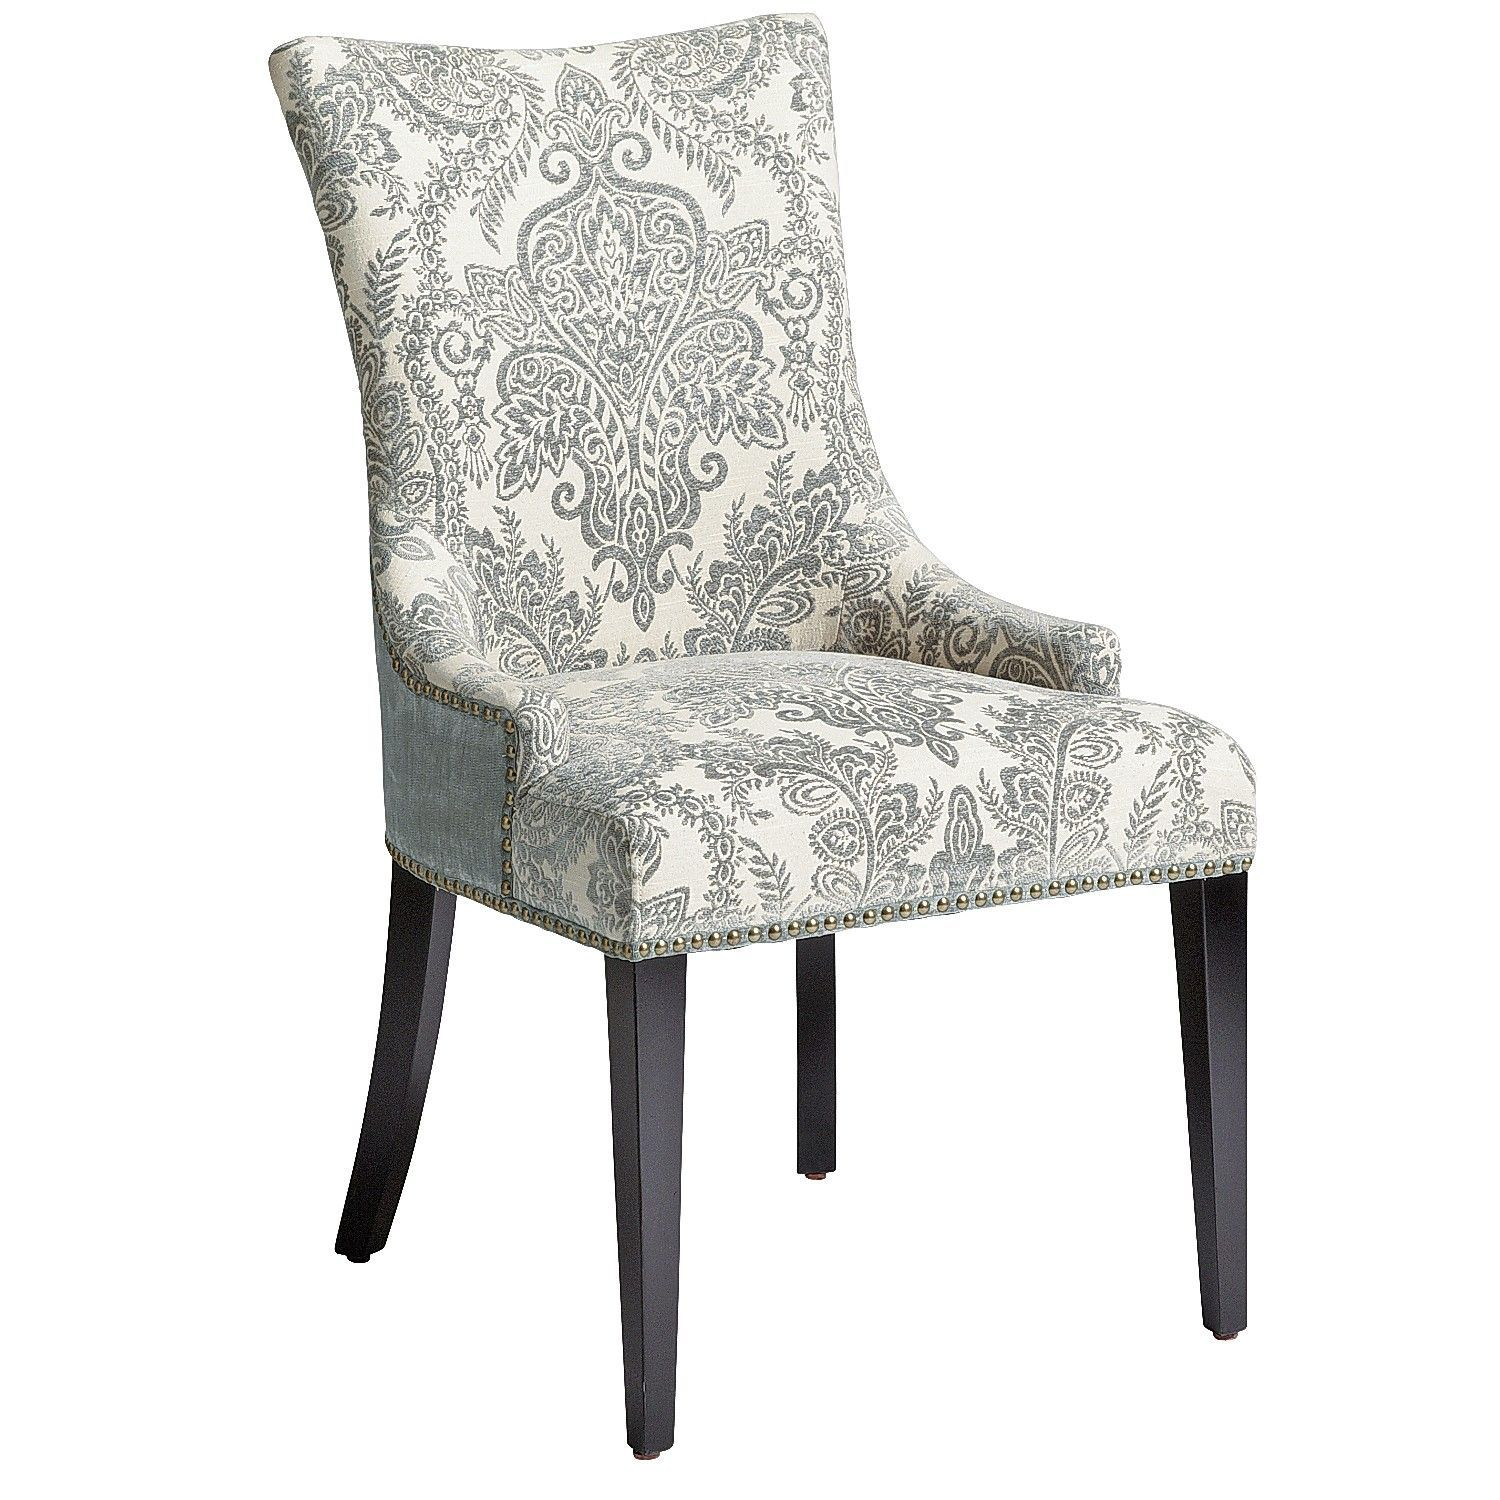 Adelle Dining Chair Blue Damask Dining Chairs Blue Dining Chair Comfy Chairs